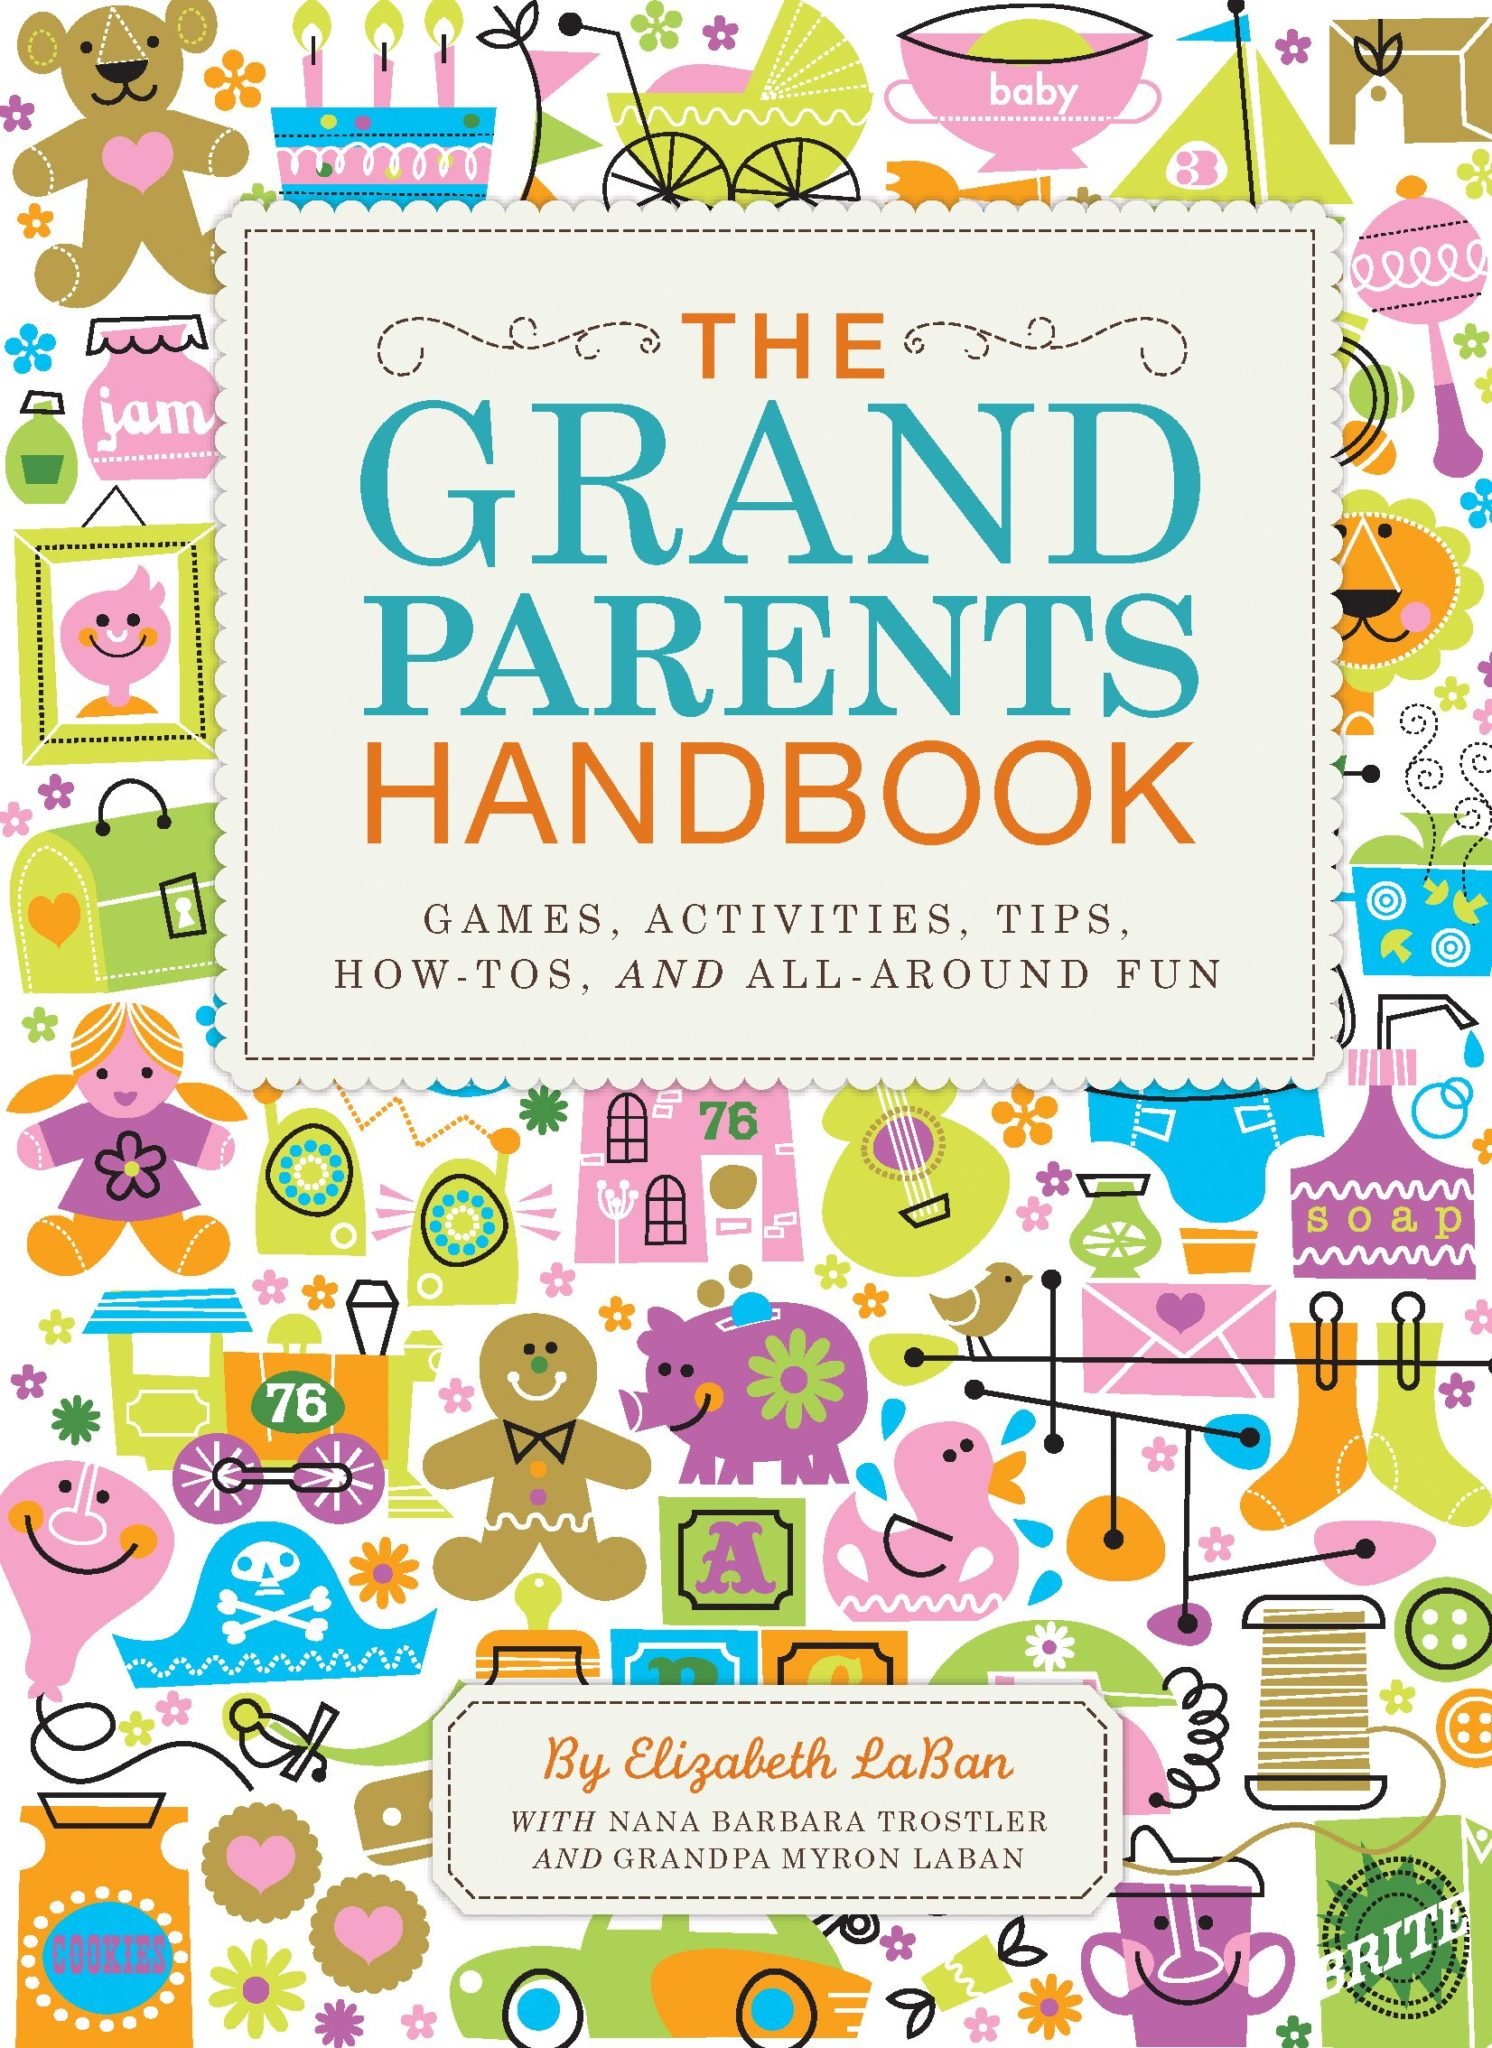 The Grandparent's Handbook